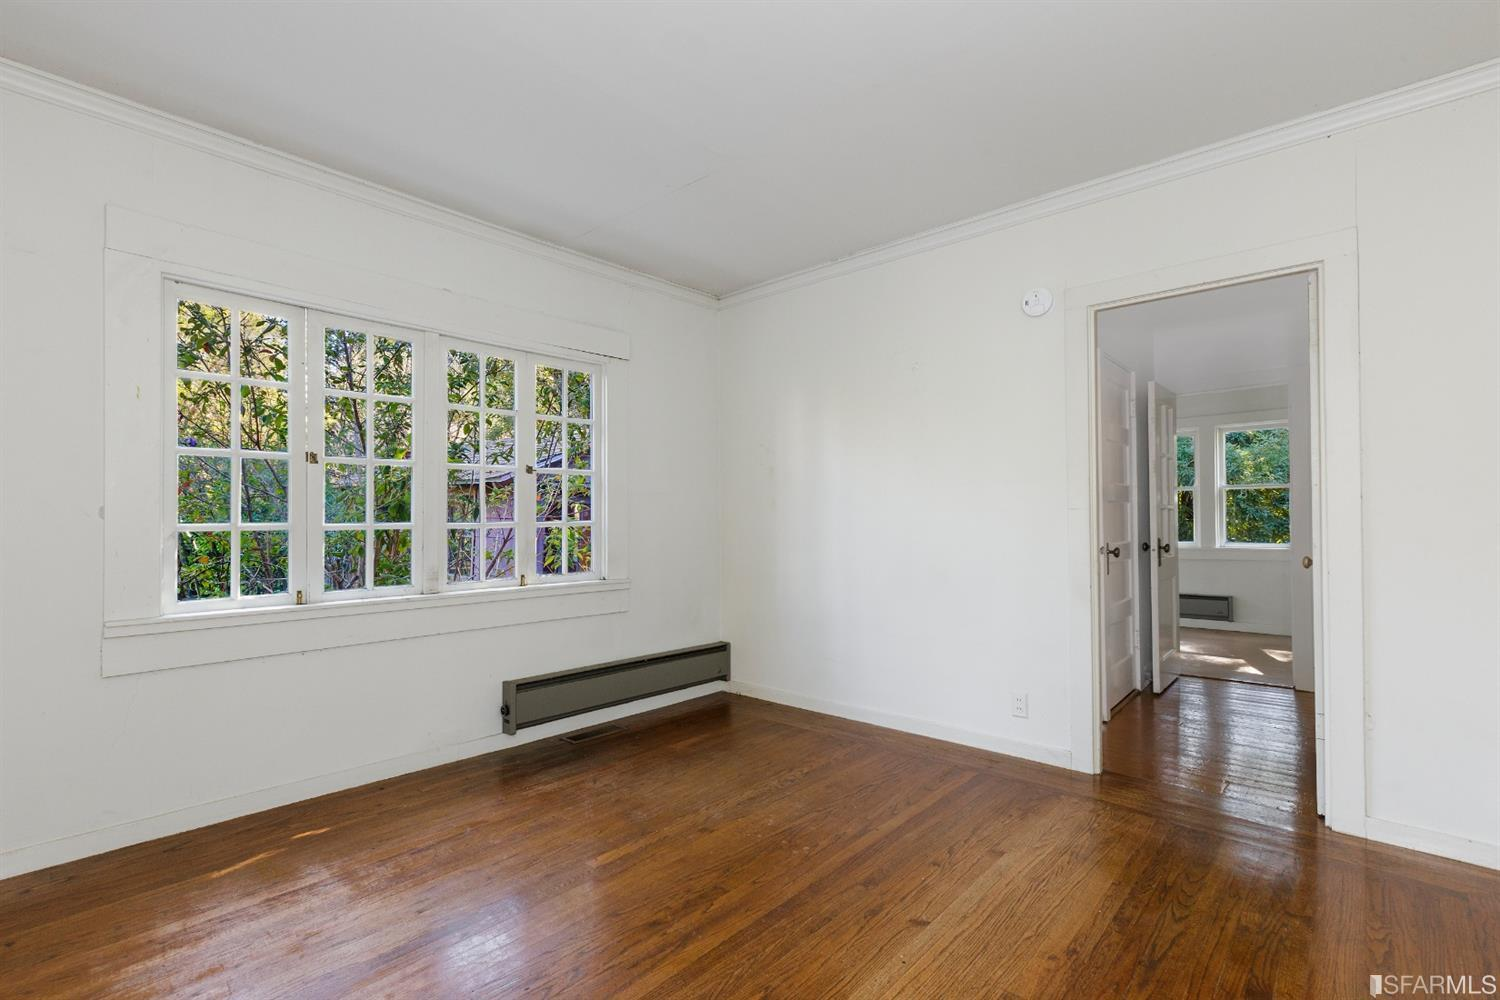 32 Sycamore Ave Mill Valley, CA. | MLS# 455274 | Andrew de Vries ...